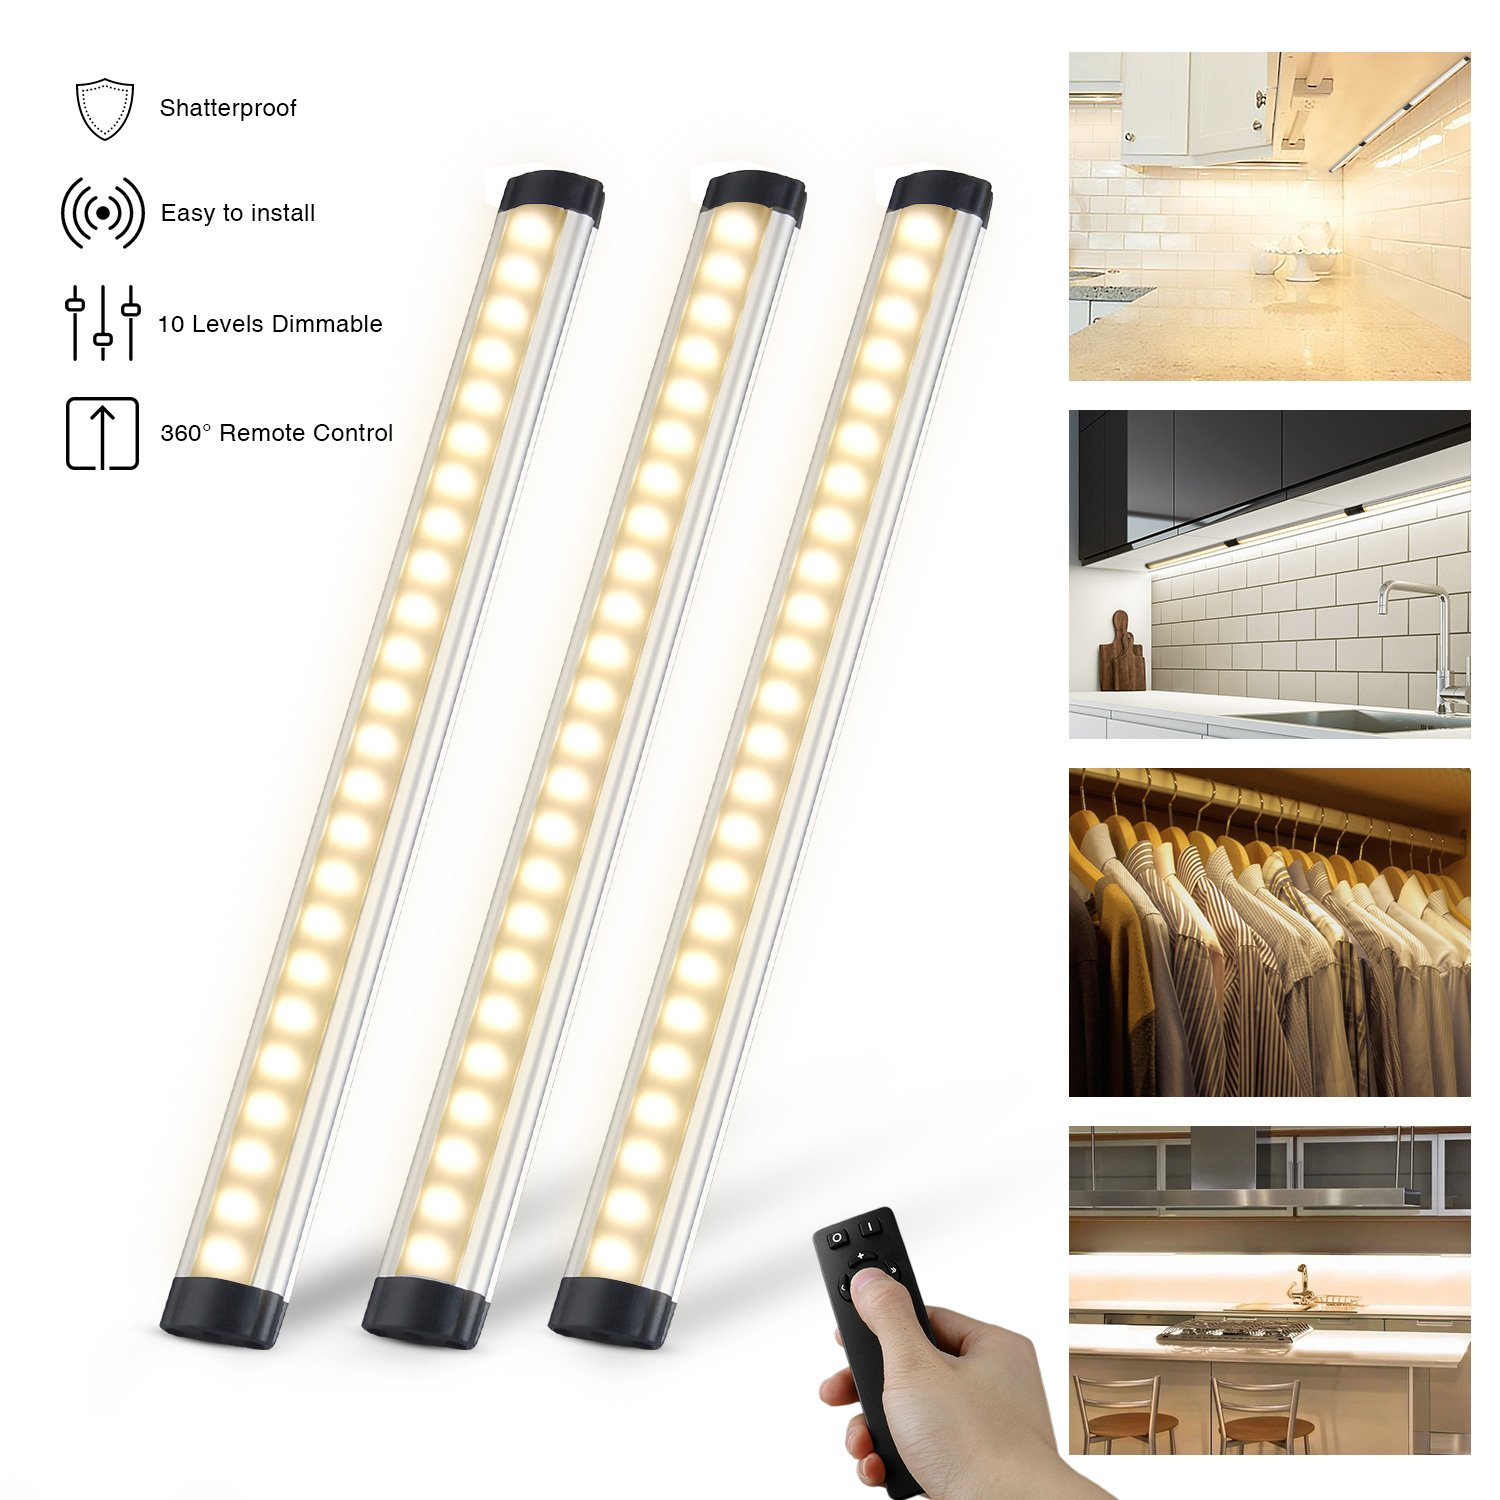 Dimmable Under Cabinet Lights Kitchen Lighting with Controller LED Closet Lighting 12W, 900LM, 3000K Warm White Under Counter Lighting for Closet/Wardrobe/Drawer/Cupboard Haibei